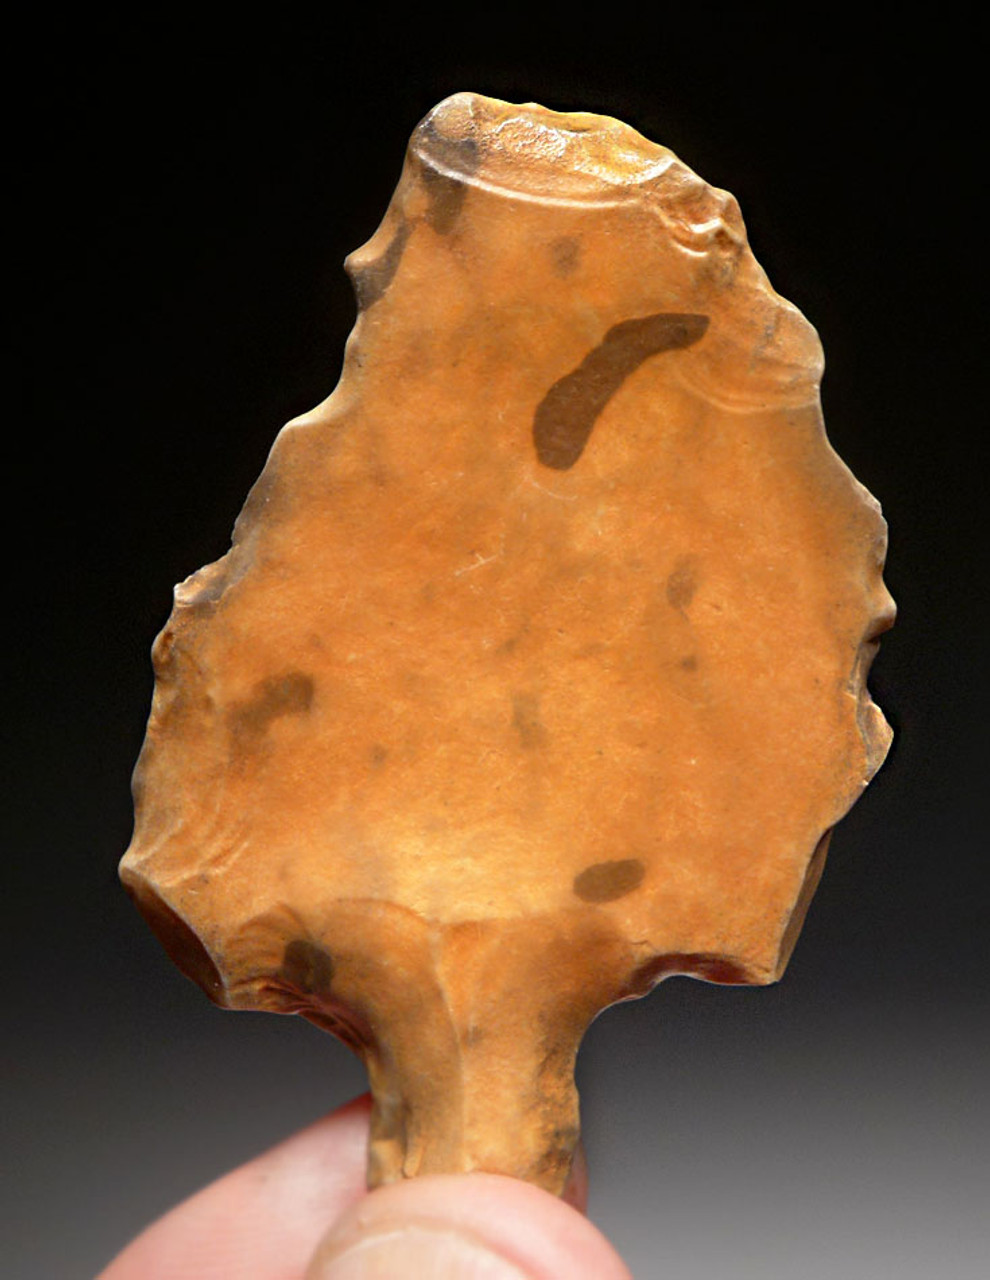 SUPERB COLORFUL EARLIEST KNOWN TANGED ARROWHEAD - MIDDLE PALEOLITHIC ATERIAN POINT *AT102